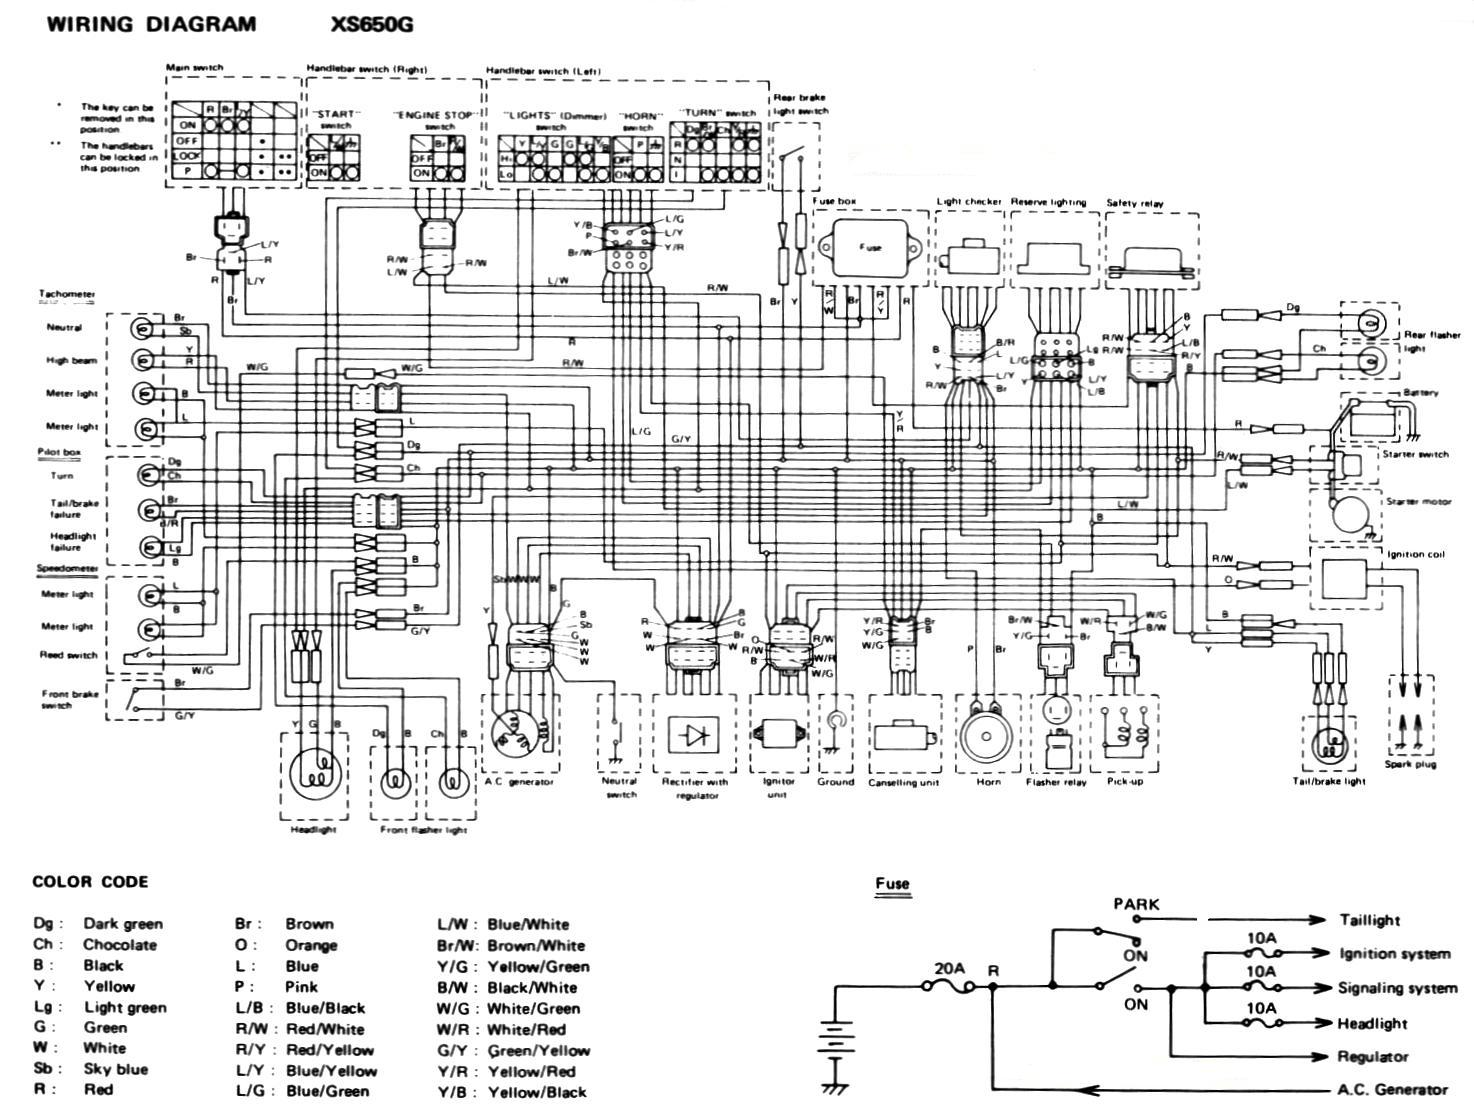 80XS650G xs750 wiring diagram color on xs750 download wirning diagrams  at gsmx.co